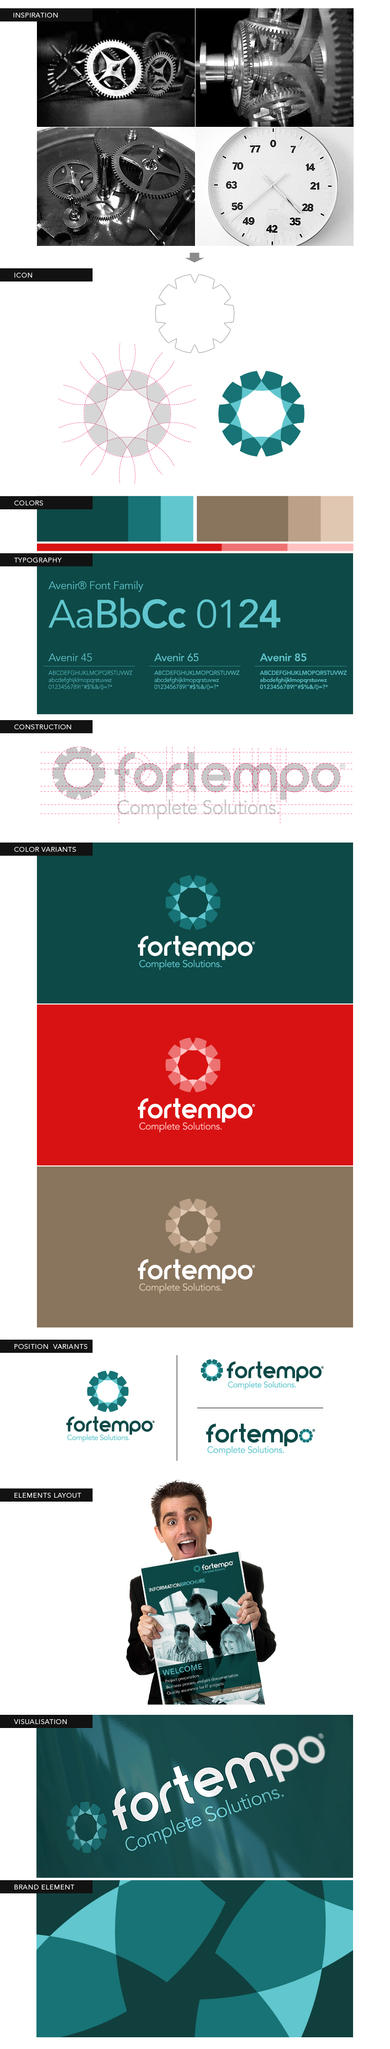 For tempo branding by brandzigners